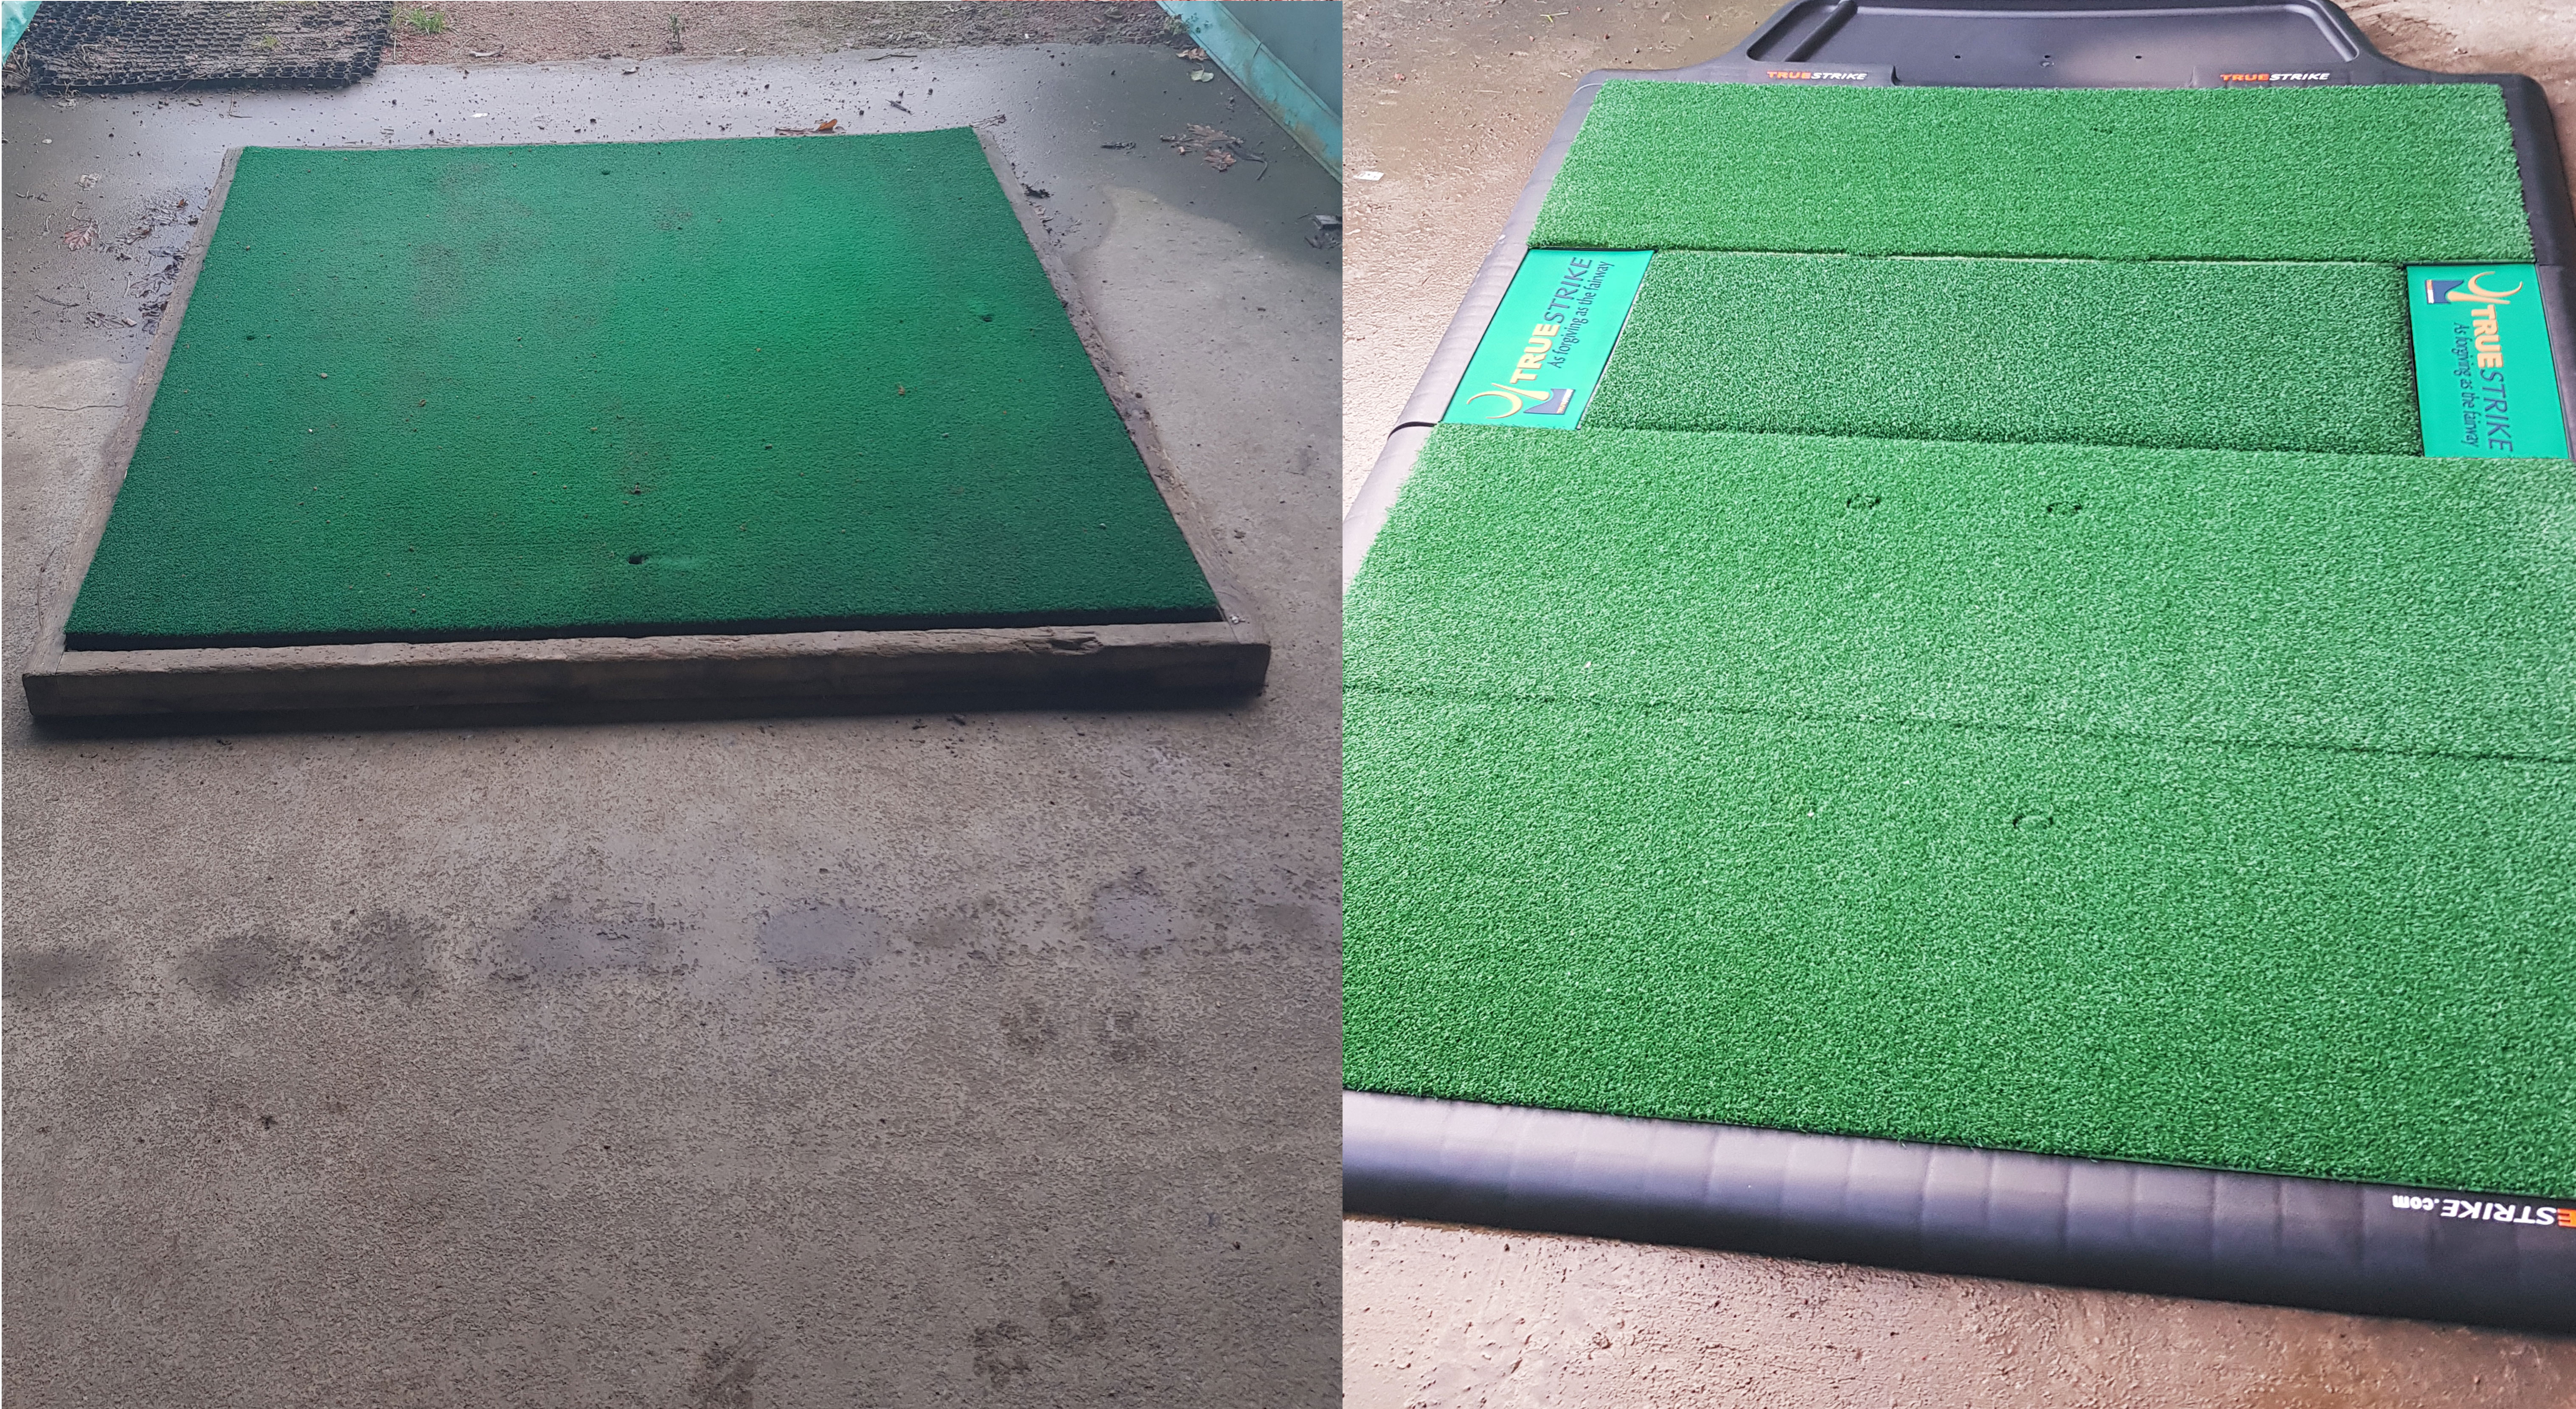 oklahoma golf greens our mats grass putting in synlawn residential artificial gallery green